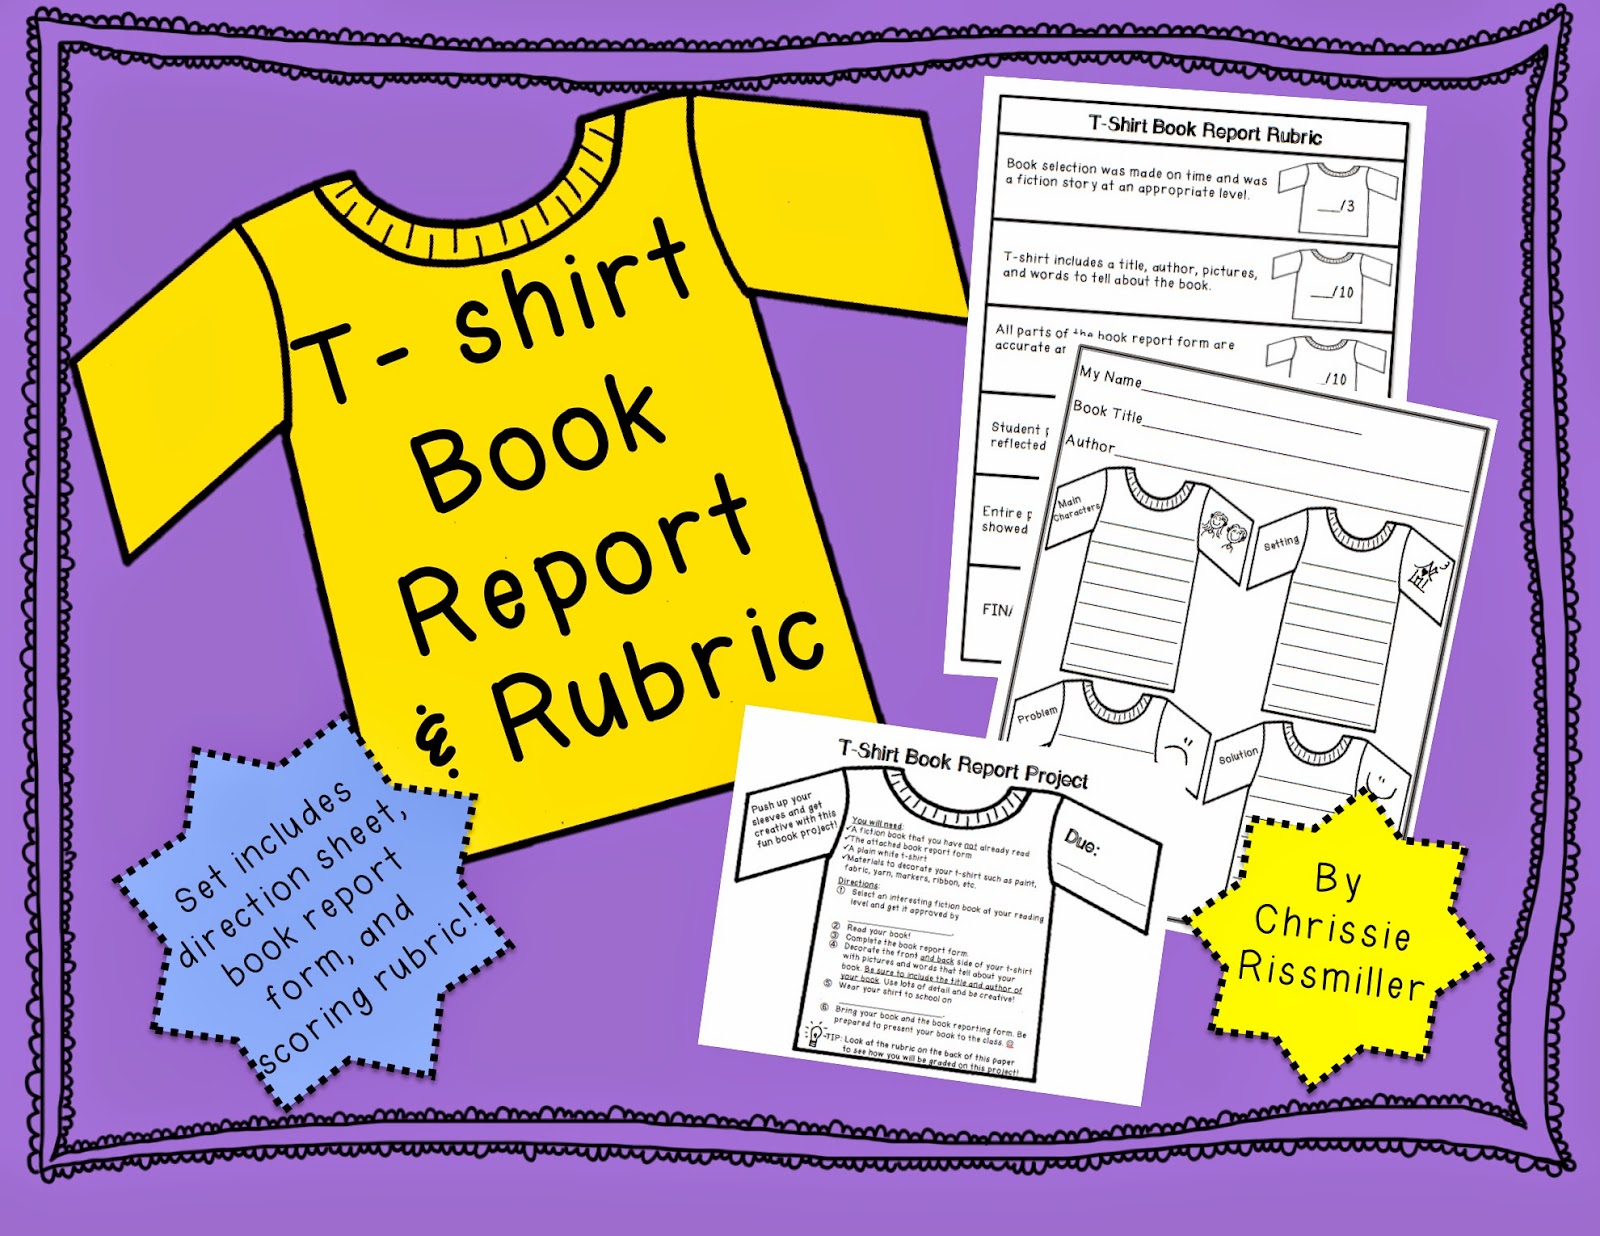 Design a t shirt rubric -  The Parent Explanation Letter Book Reporting Form And Grading Rubric Are Available Here As A Part Of My T Shirt Book Reporting Project And Rubric Set